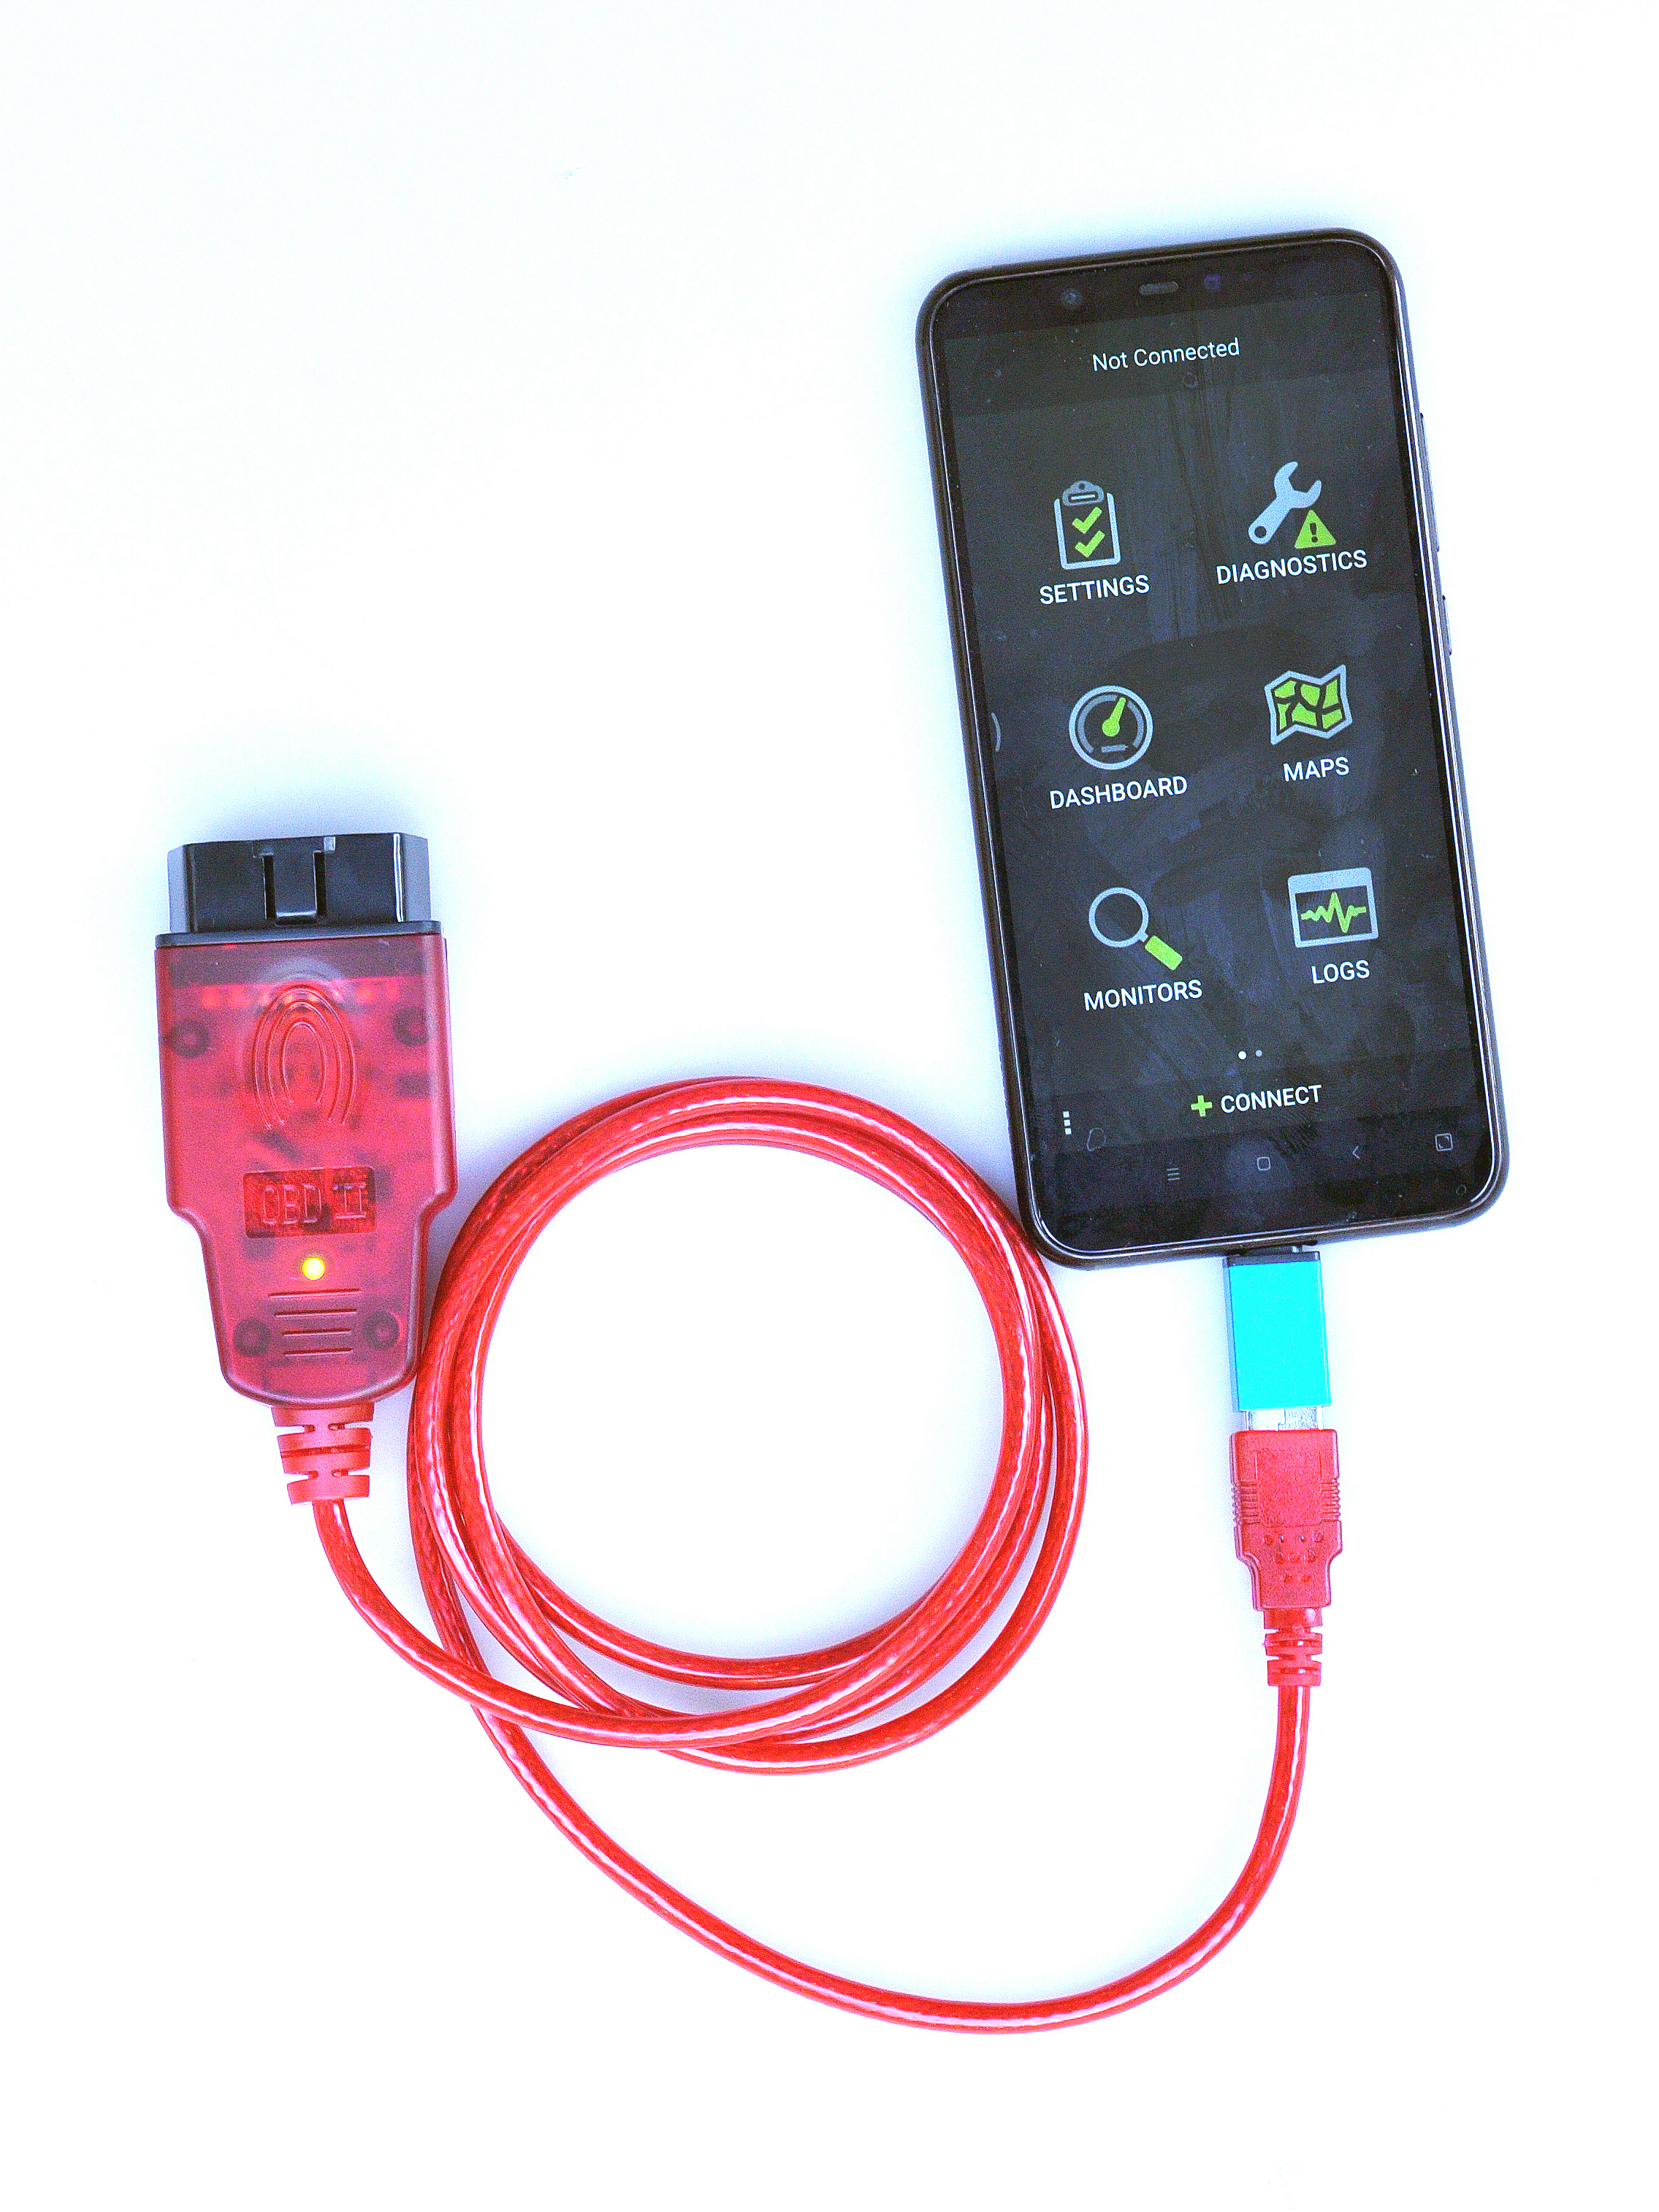 OBDLink SX USB 425801 Diagnostic Interface & OBDWiz Software For Windows Android Laptop Smart Phone